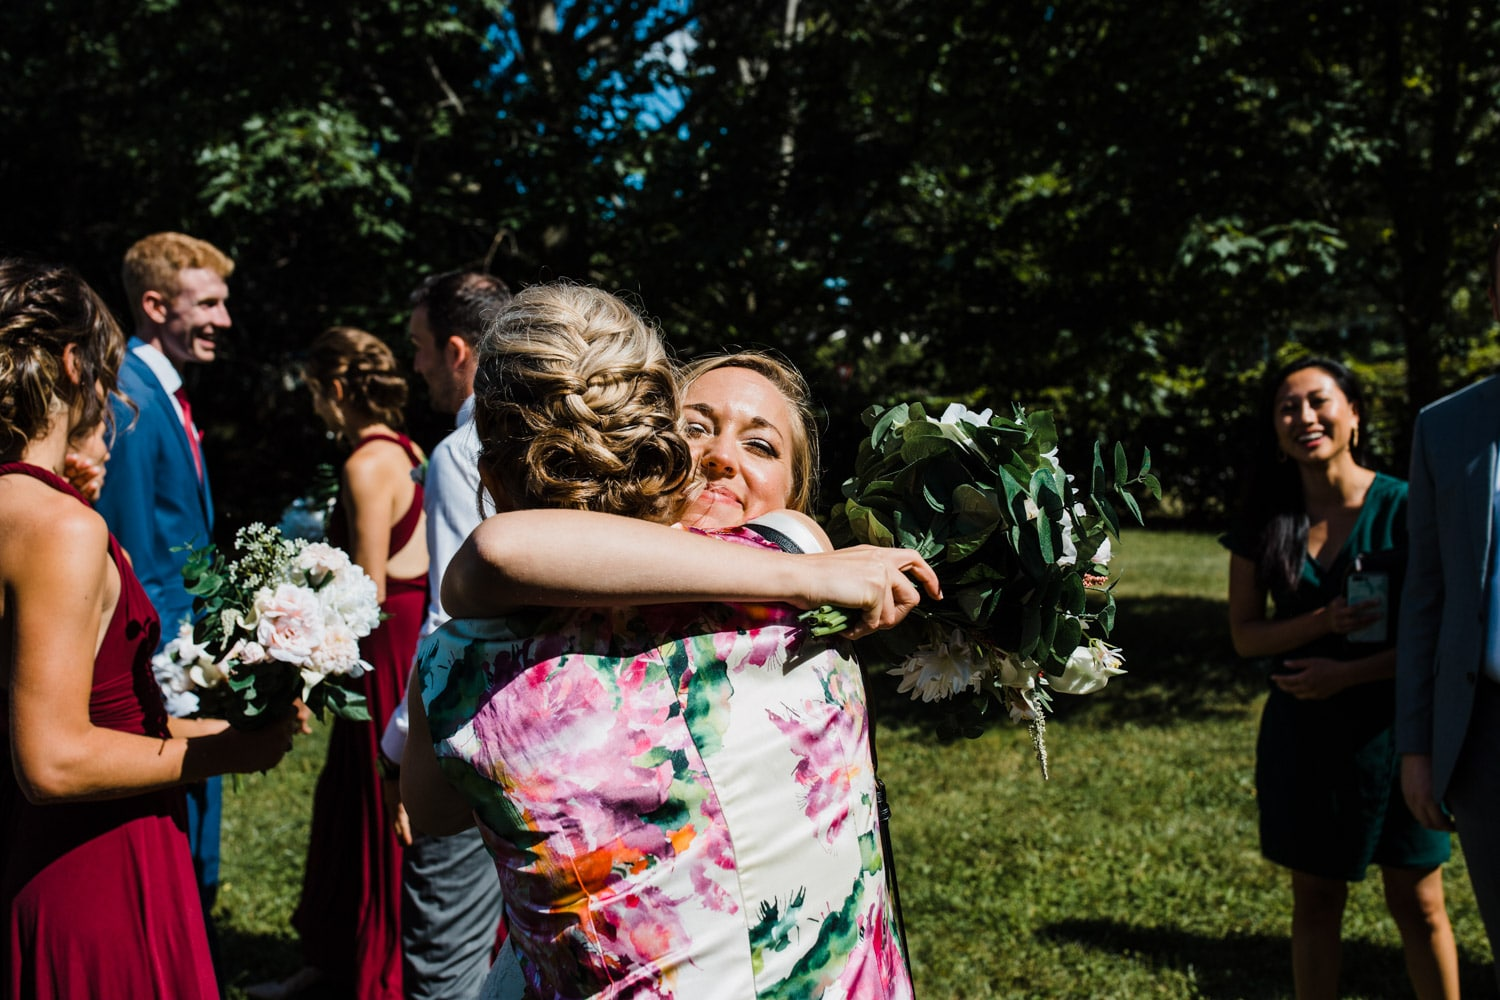 bride hugs mother-in-law after ceremony